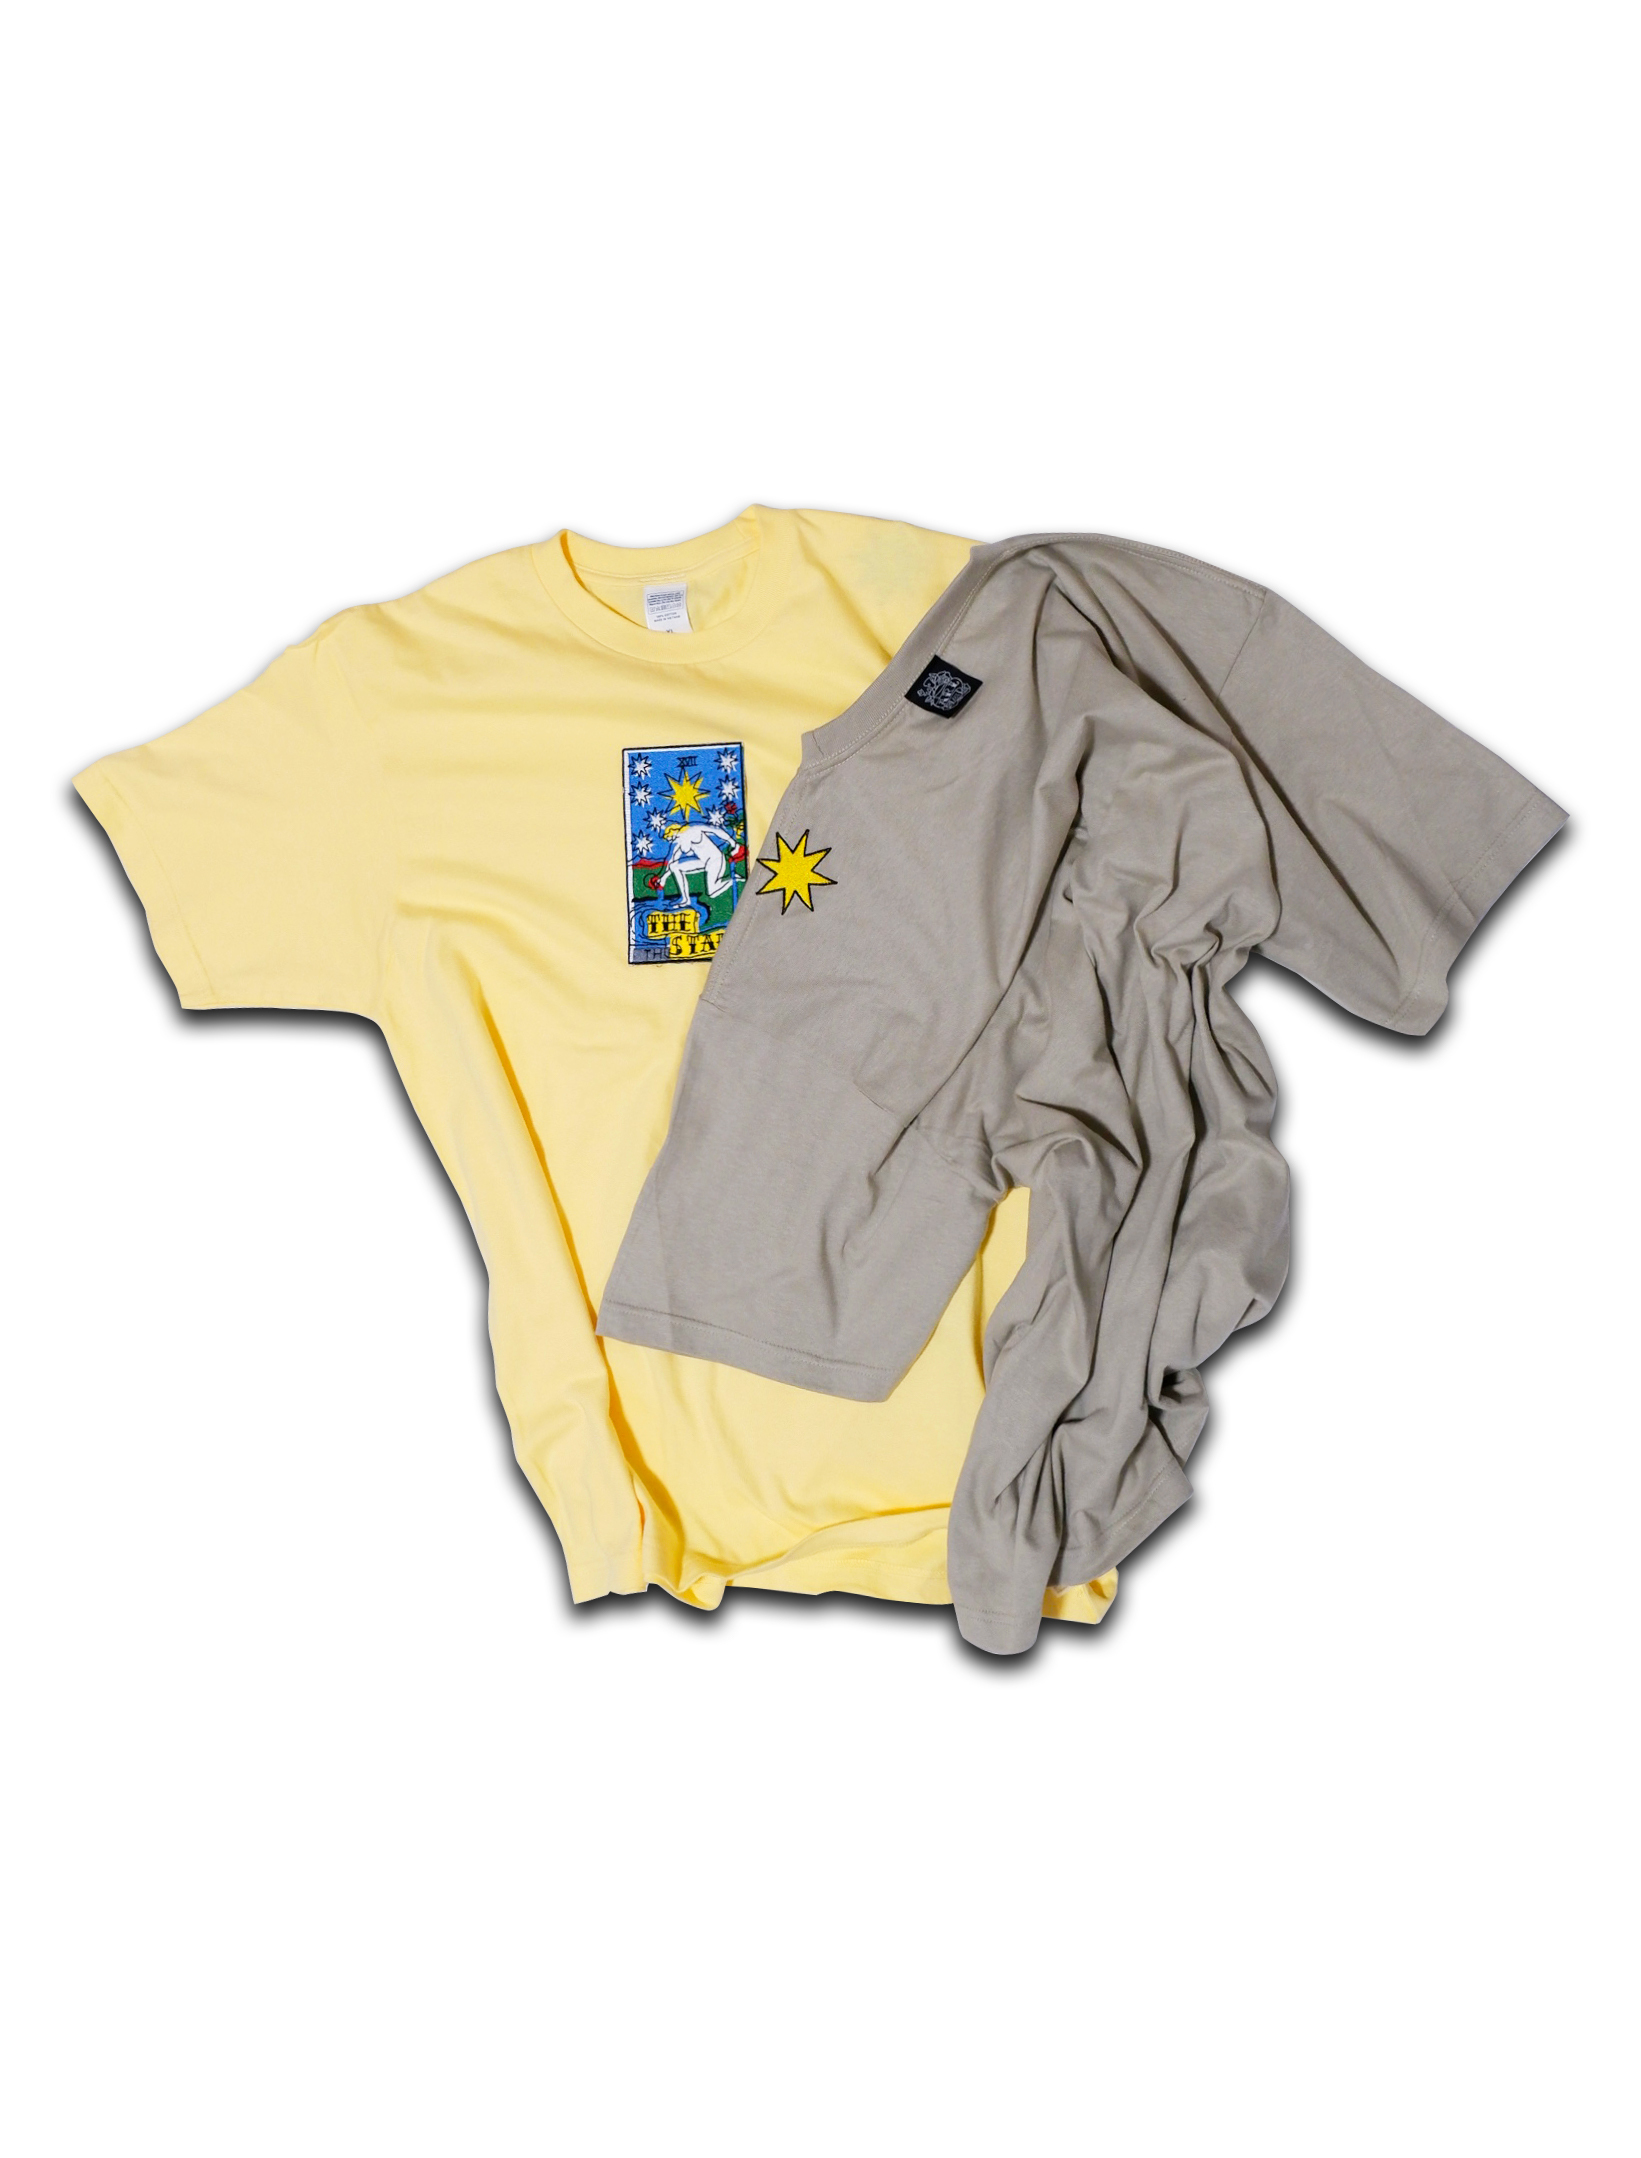 17.THE STAR PATCH TEE